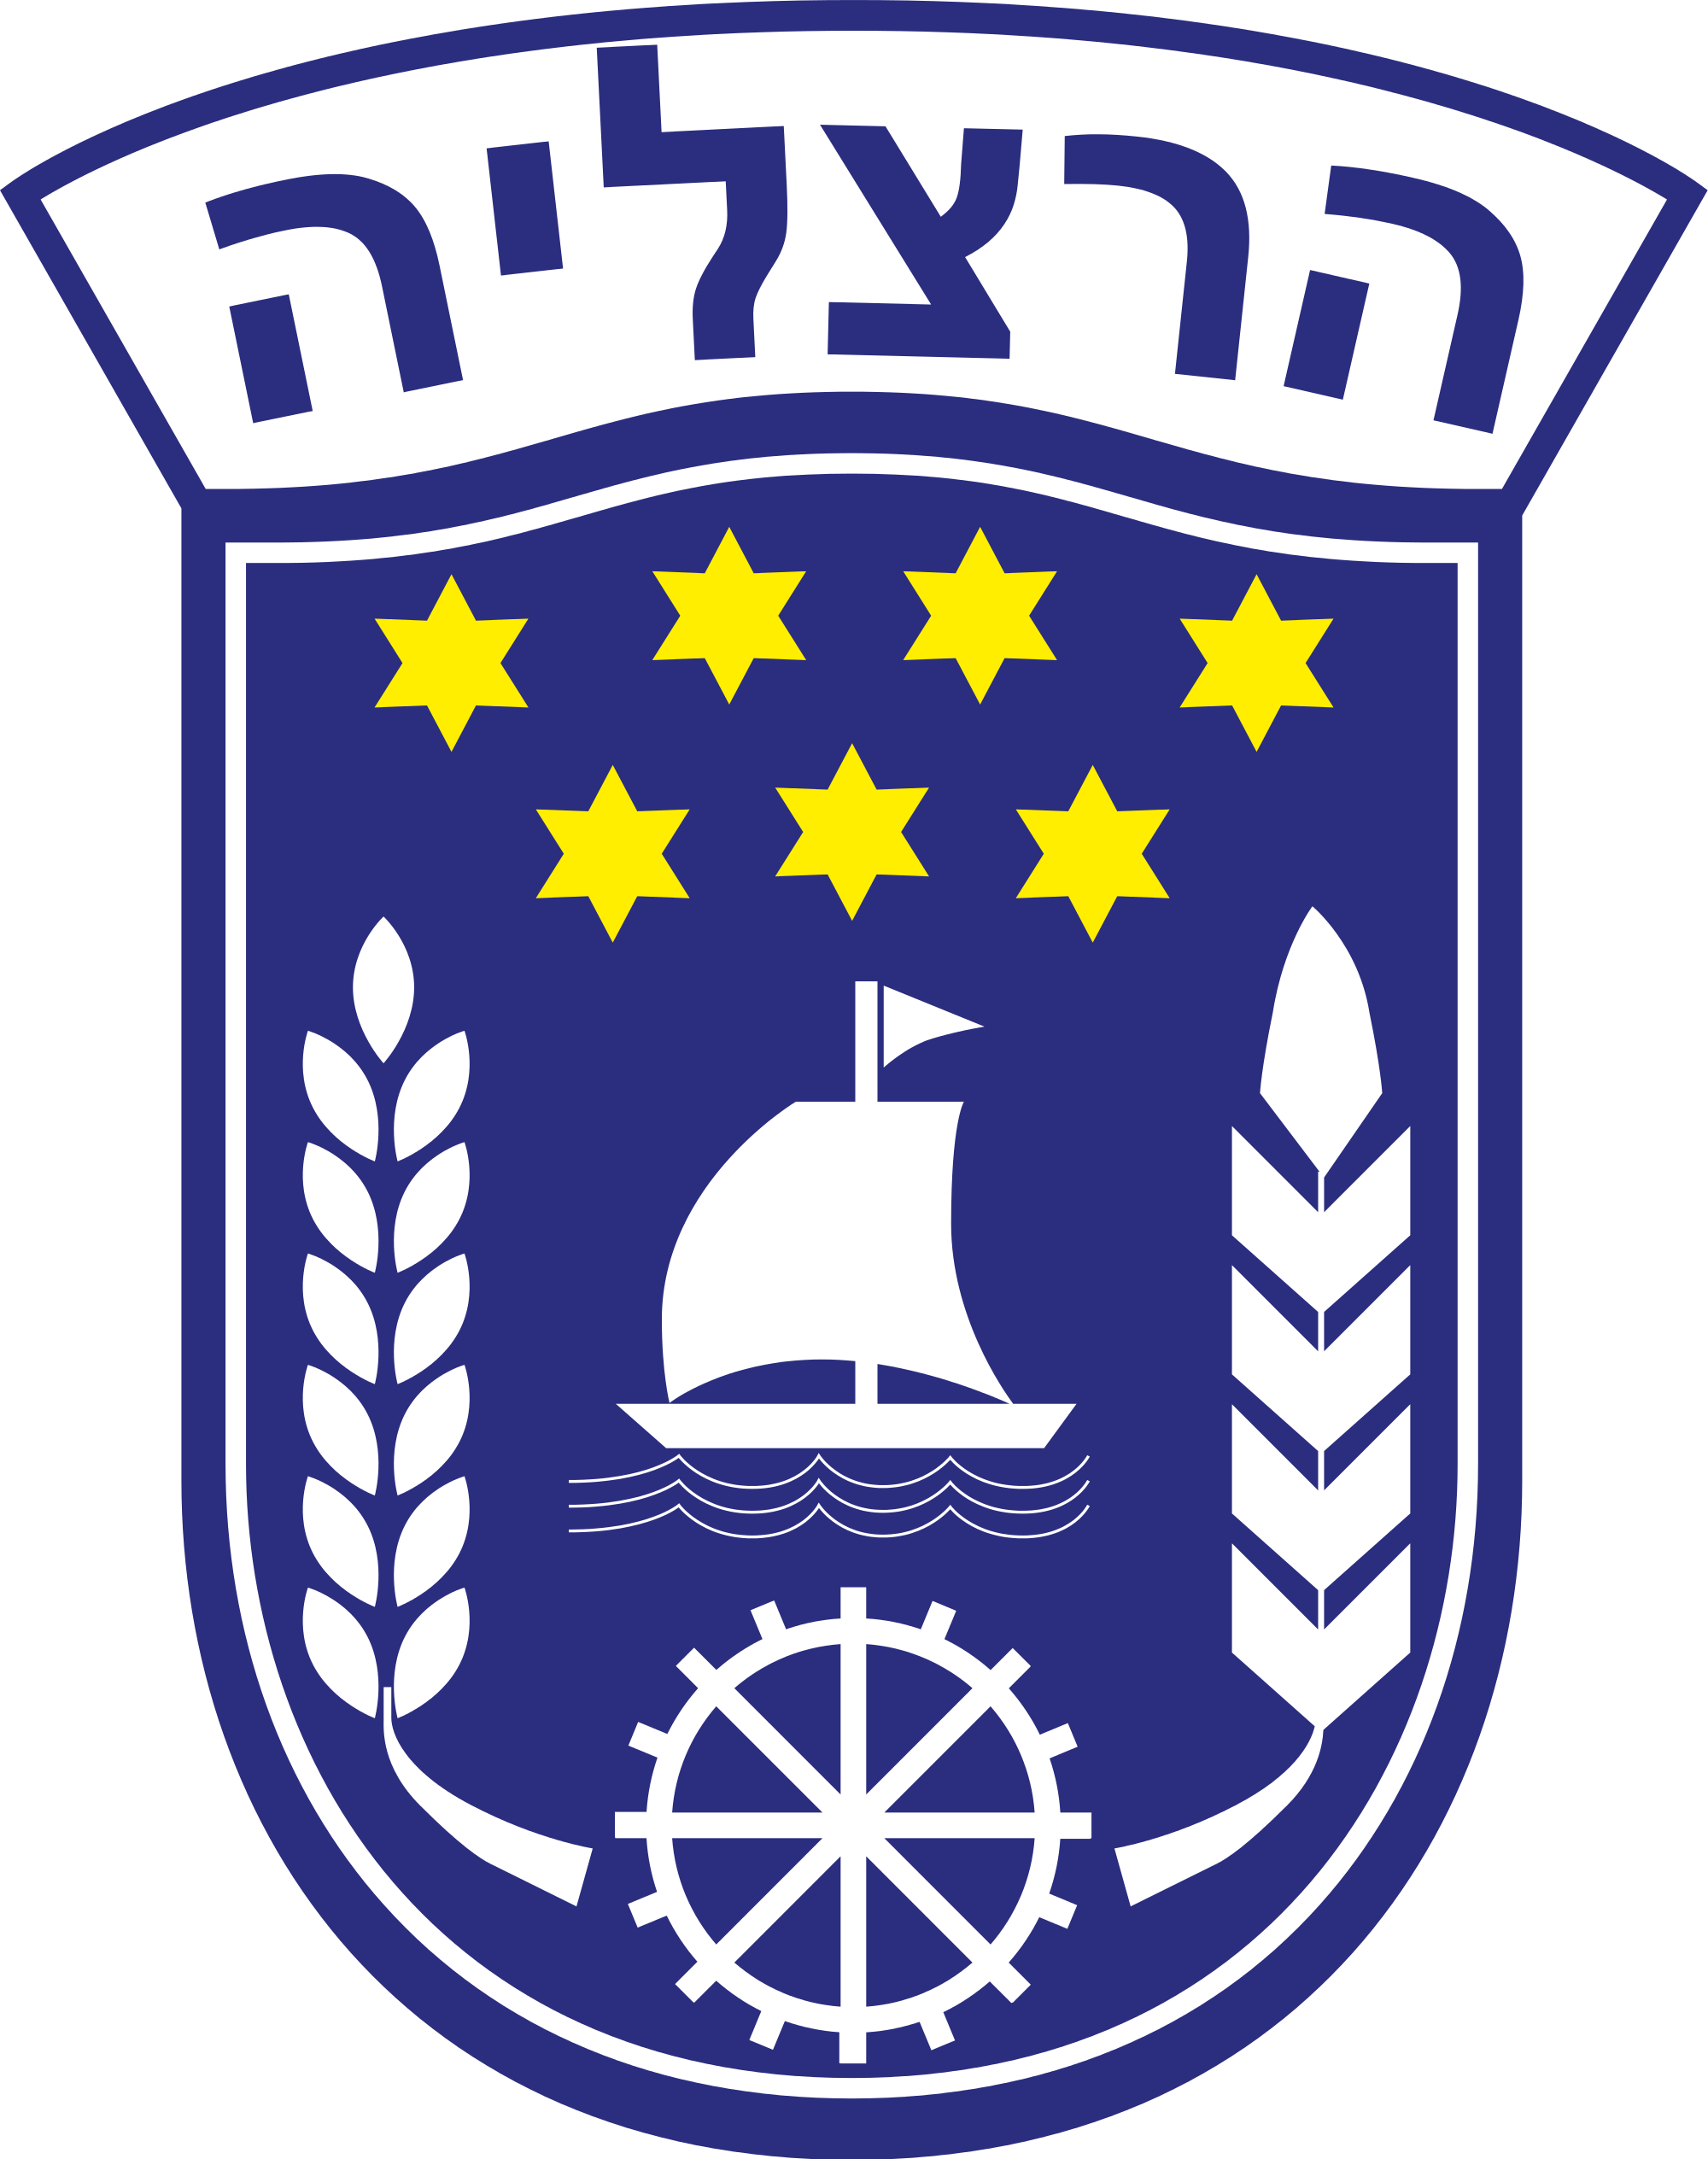 File:Coat of Arms of Herzliya.svg.